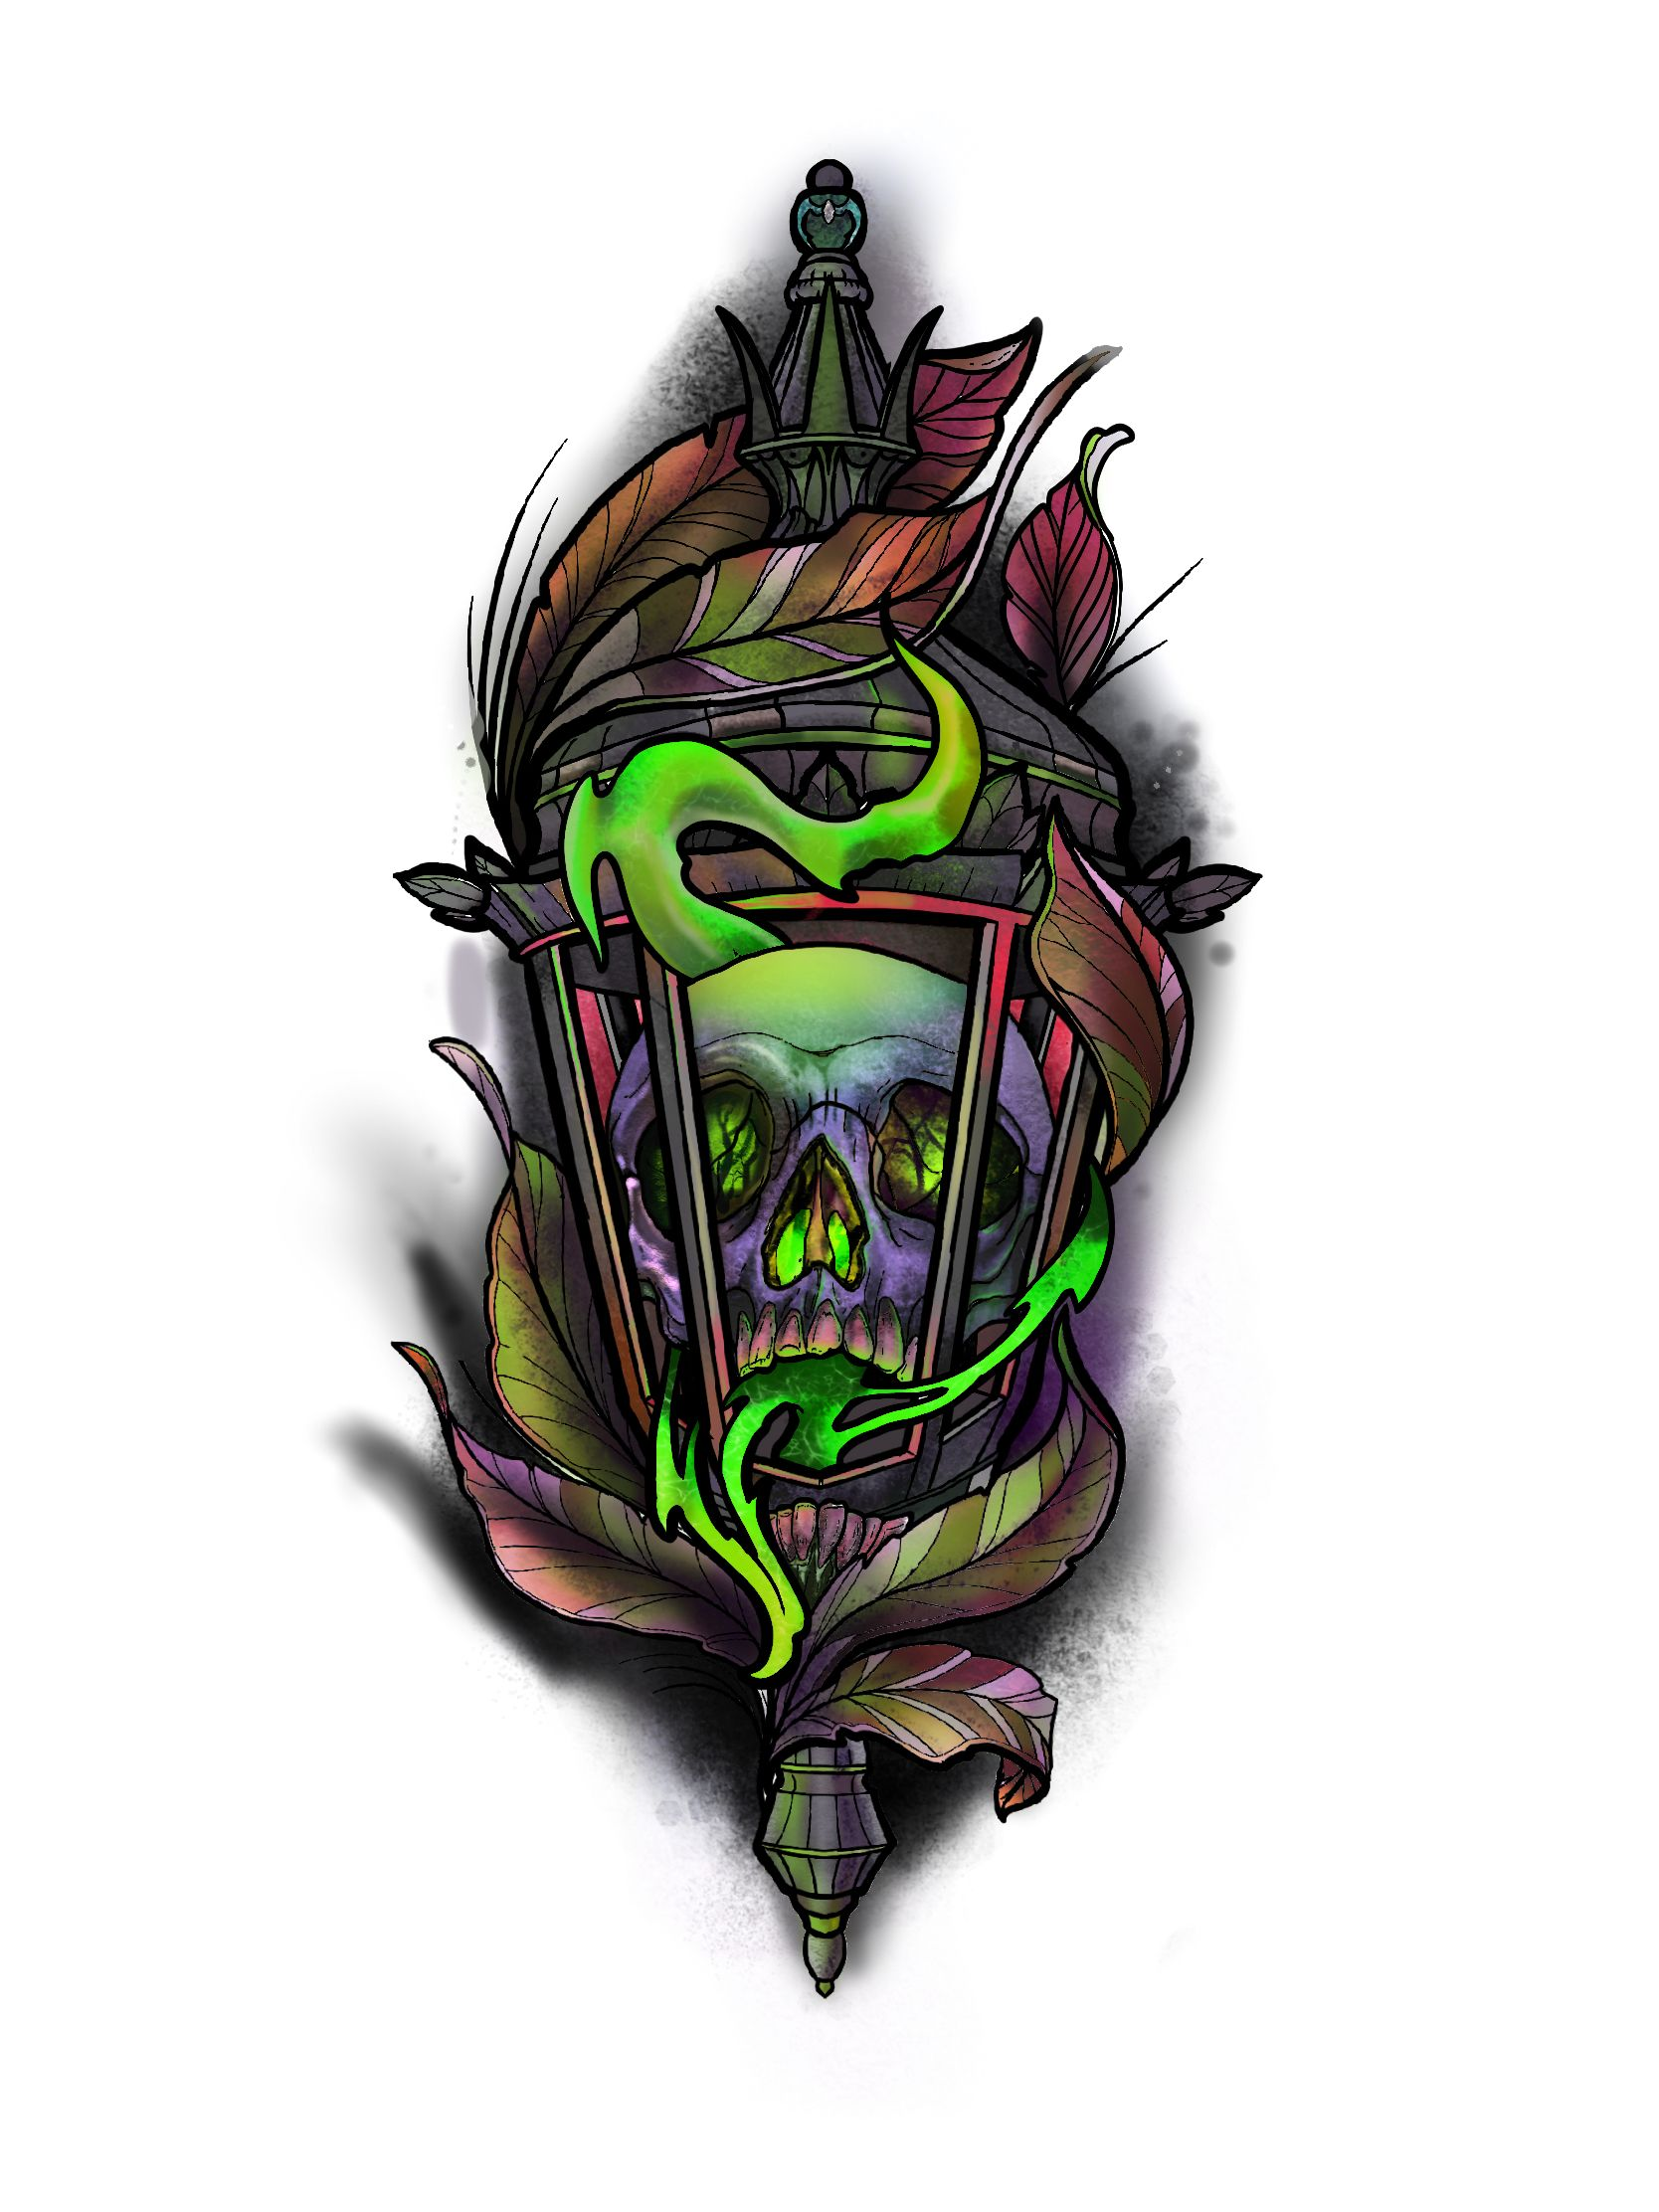 Cool neotraditional skull and lantern tattoo design by